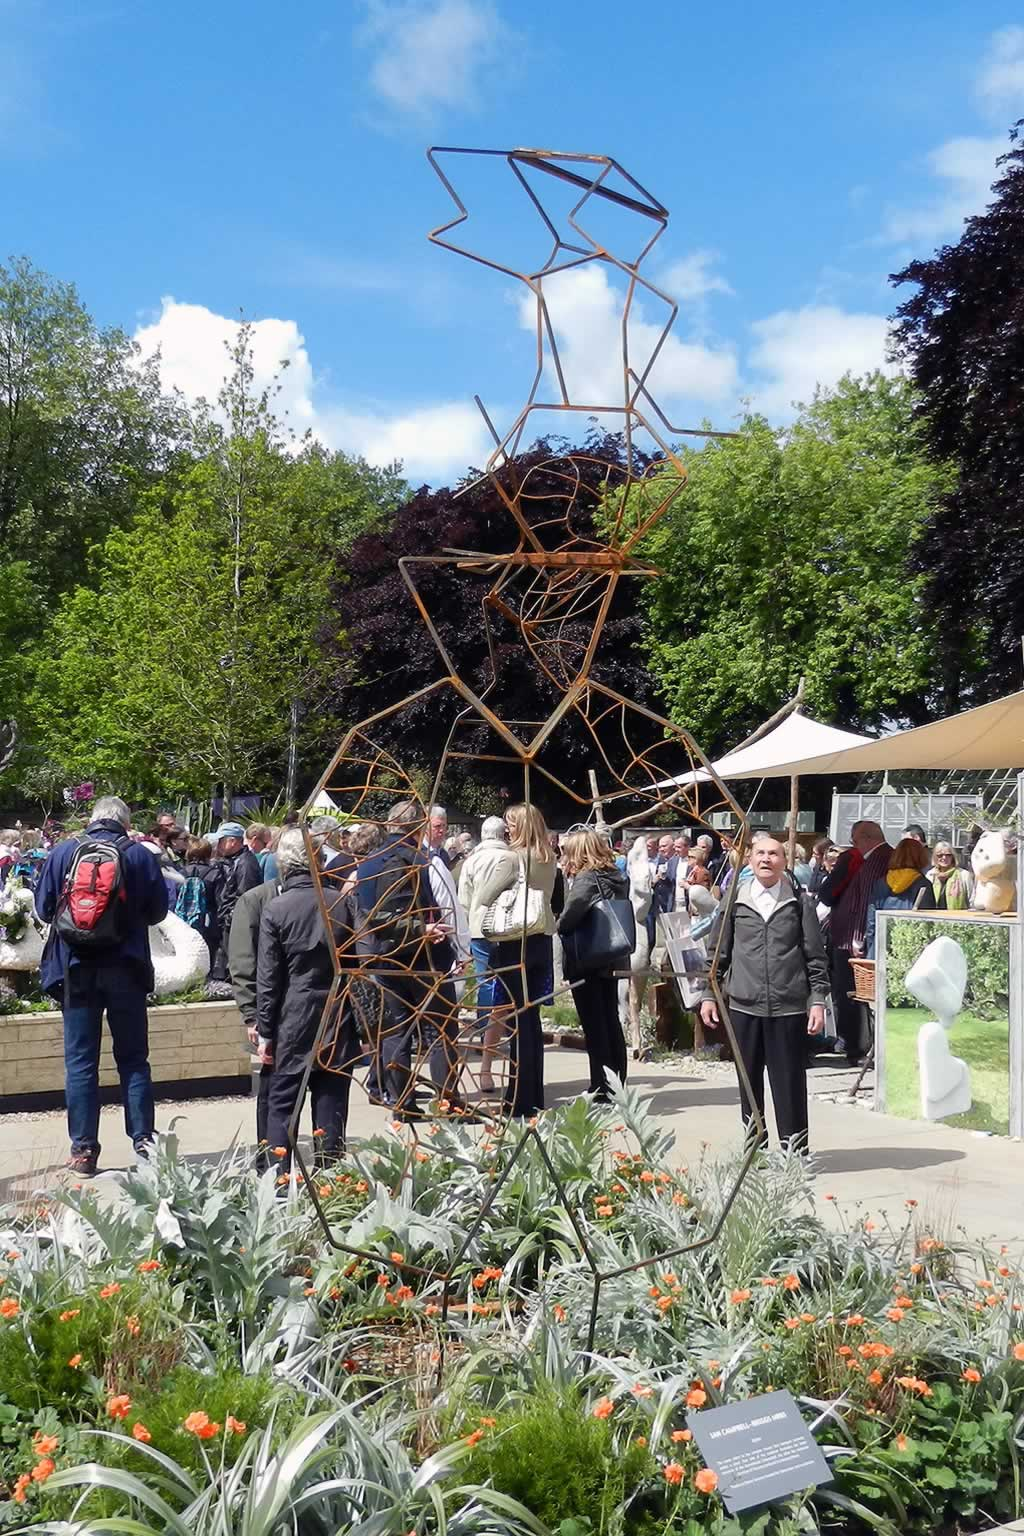 Xylem at the Chelsea Flower Show (abstract sculpture) by sculptor Ian Campbell-Briggs